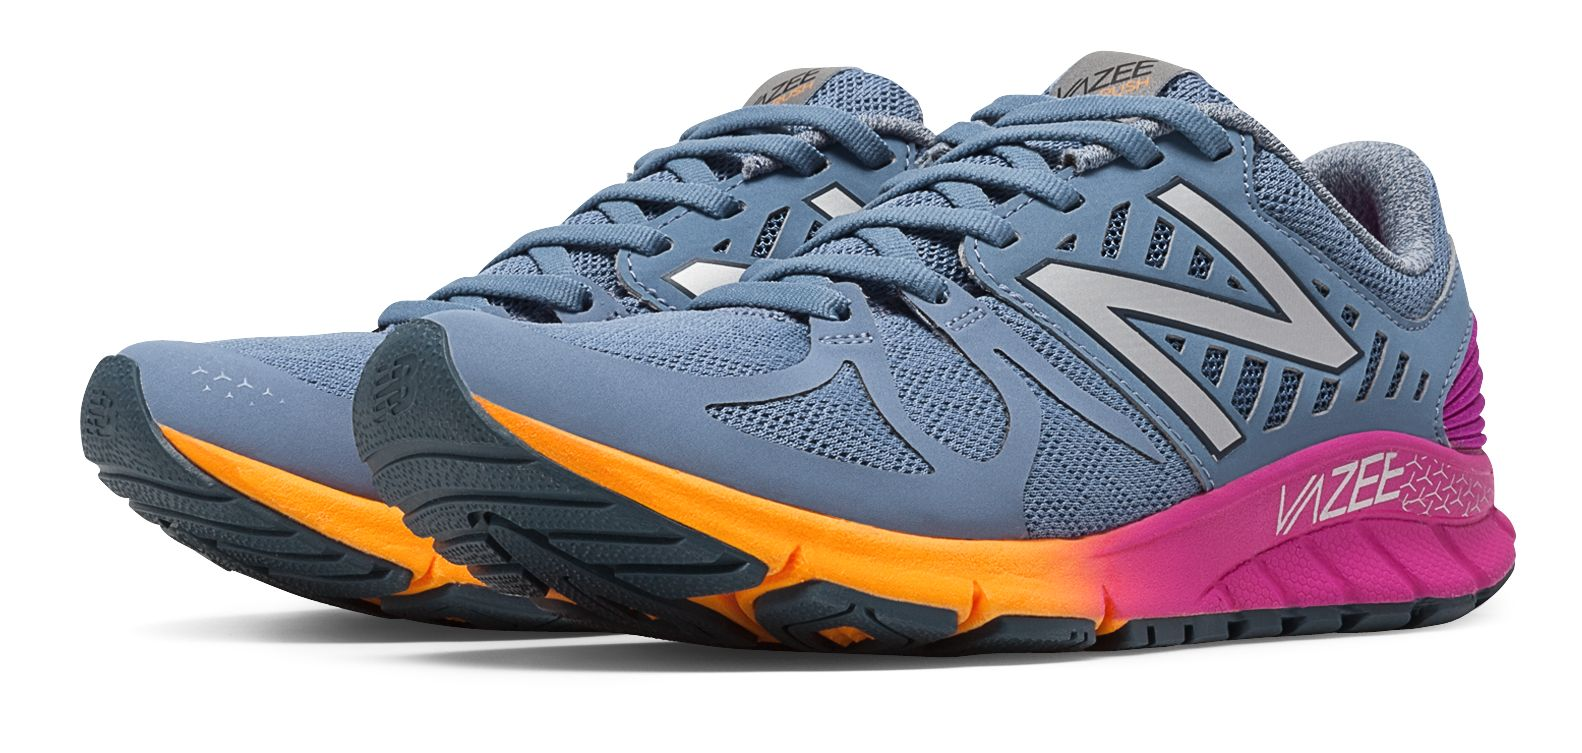 the best attitude 8c5c4 dba9b New Balance WRUSH on Sale - Discounts Up to 54% Off on WRUSHYP at Joe s New  Balance Outlet